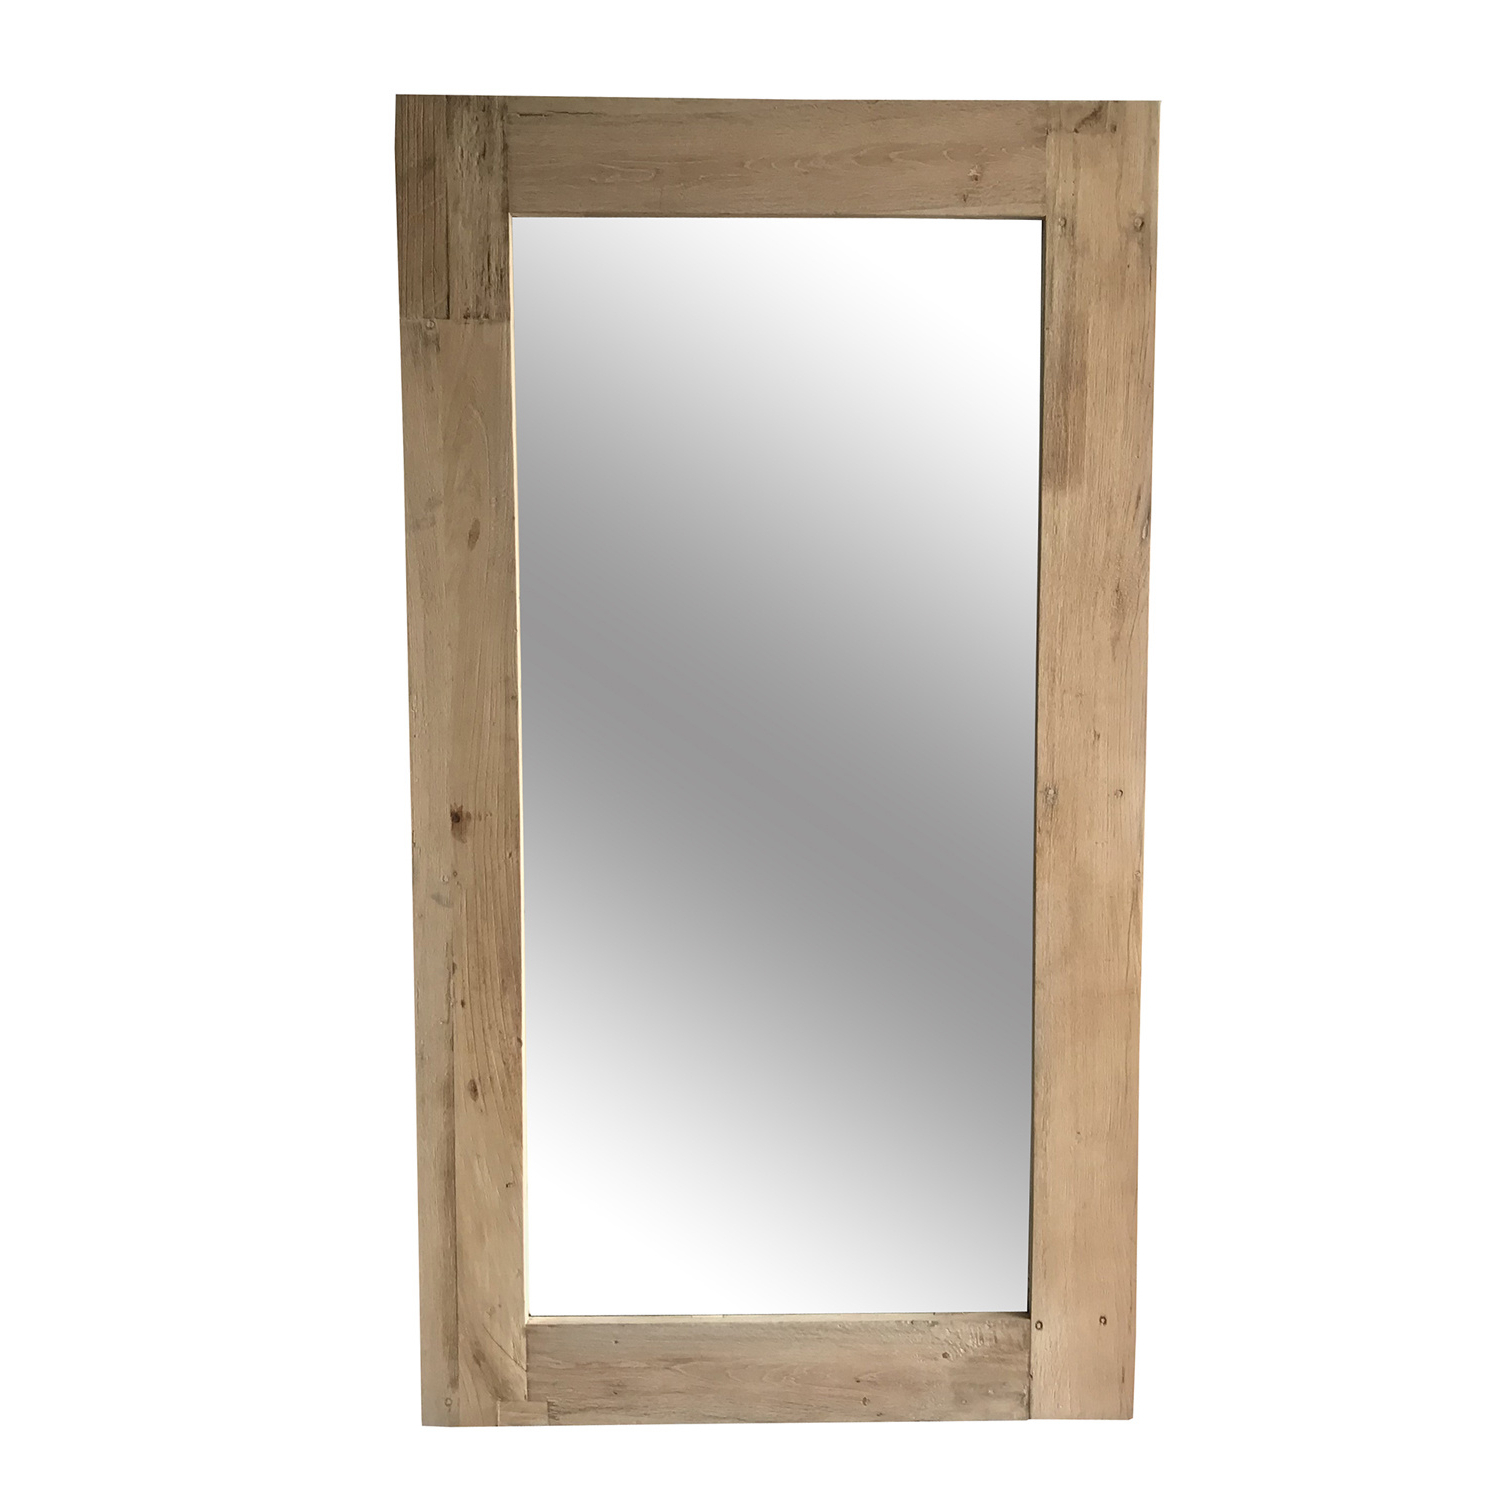 [%[hot Item] Large Big Wood Framed Floor Standing Full Length Wall Mirror In 2019 Large Full Length Wall Mirrors|large Full Length Wall Mirrors With Regard To Most Current [hot Item] Large Big Wood Framed Floor Standing Full Length Wall Mirror|favorite Large Full Length Wall Mirrors Throughout [hot Item] Large Big Wood Framed Floor Standing Full Length Wall Mirror|most Recently Released [hot Item] Large Big Wood Framed Floor Standing Full Length Wall Mirror With Large Full Length Wall Mirrors%] (View 12 of 20)